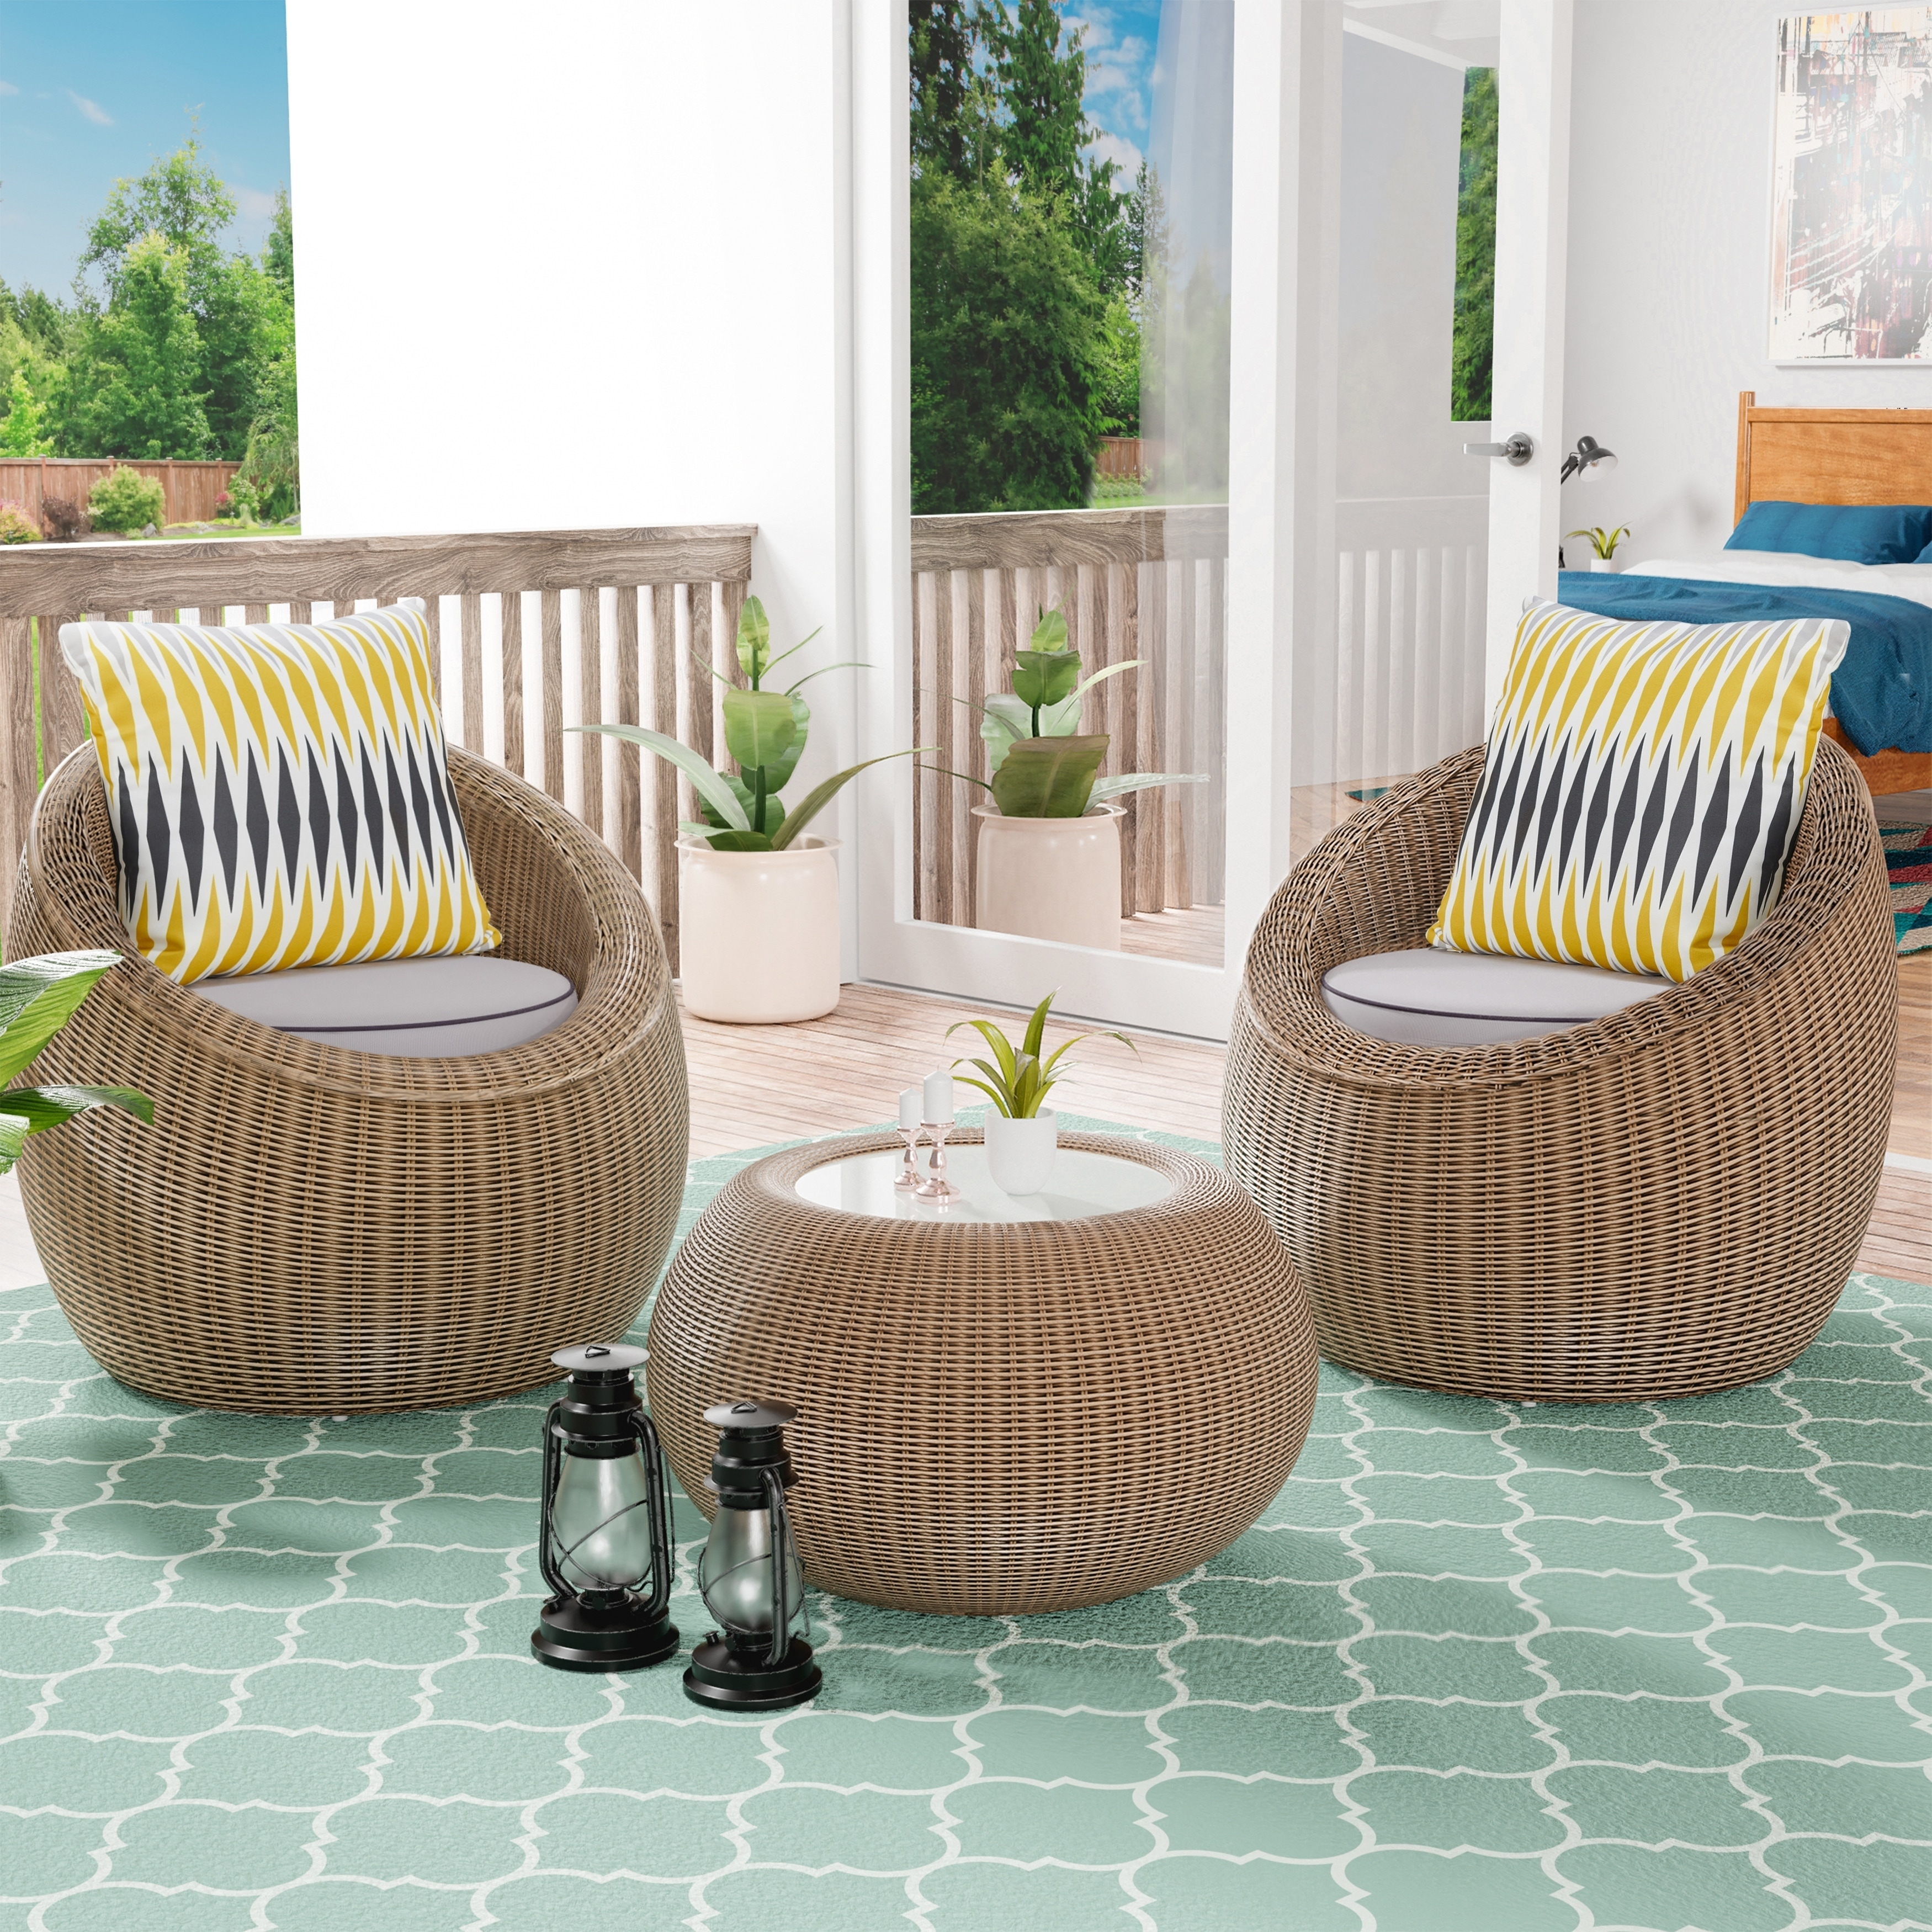 Wicker Patio Chair Havenside Home Cobb Island 3 Piece All Weather Wicker Patio Chair Set